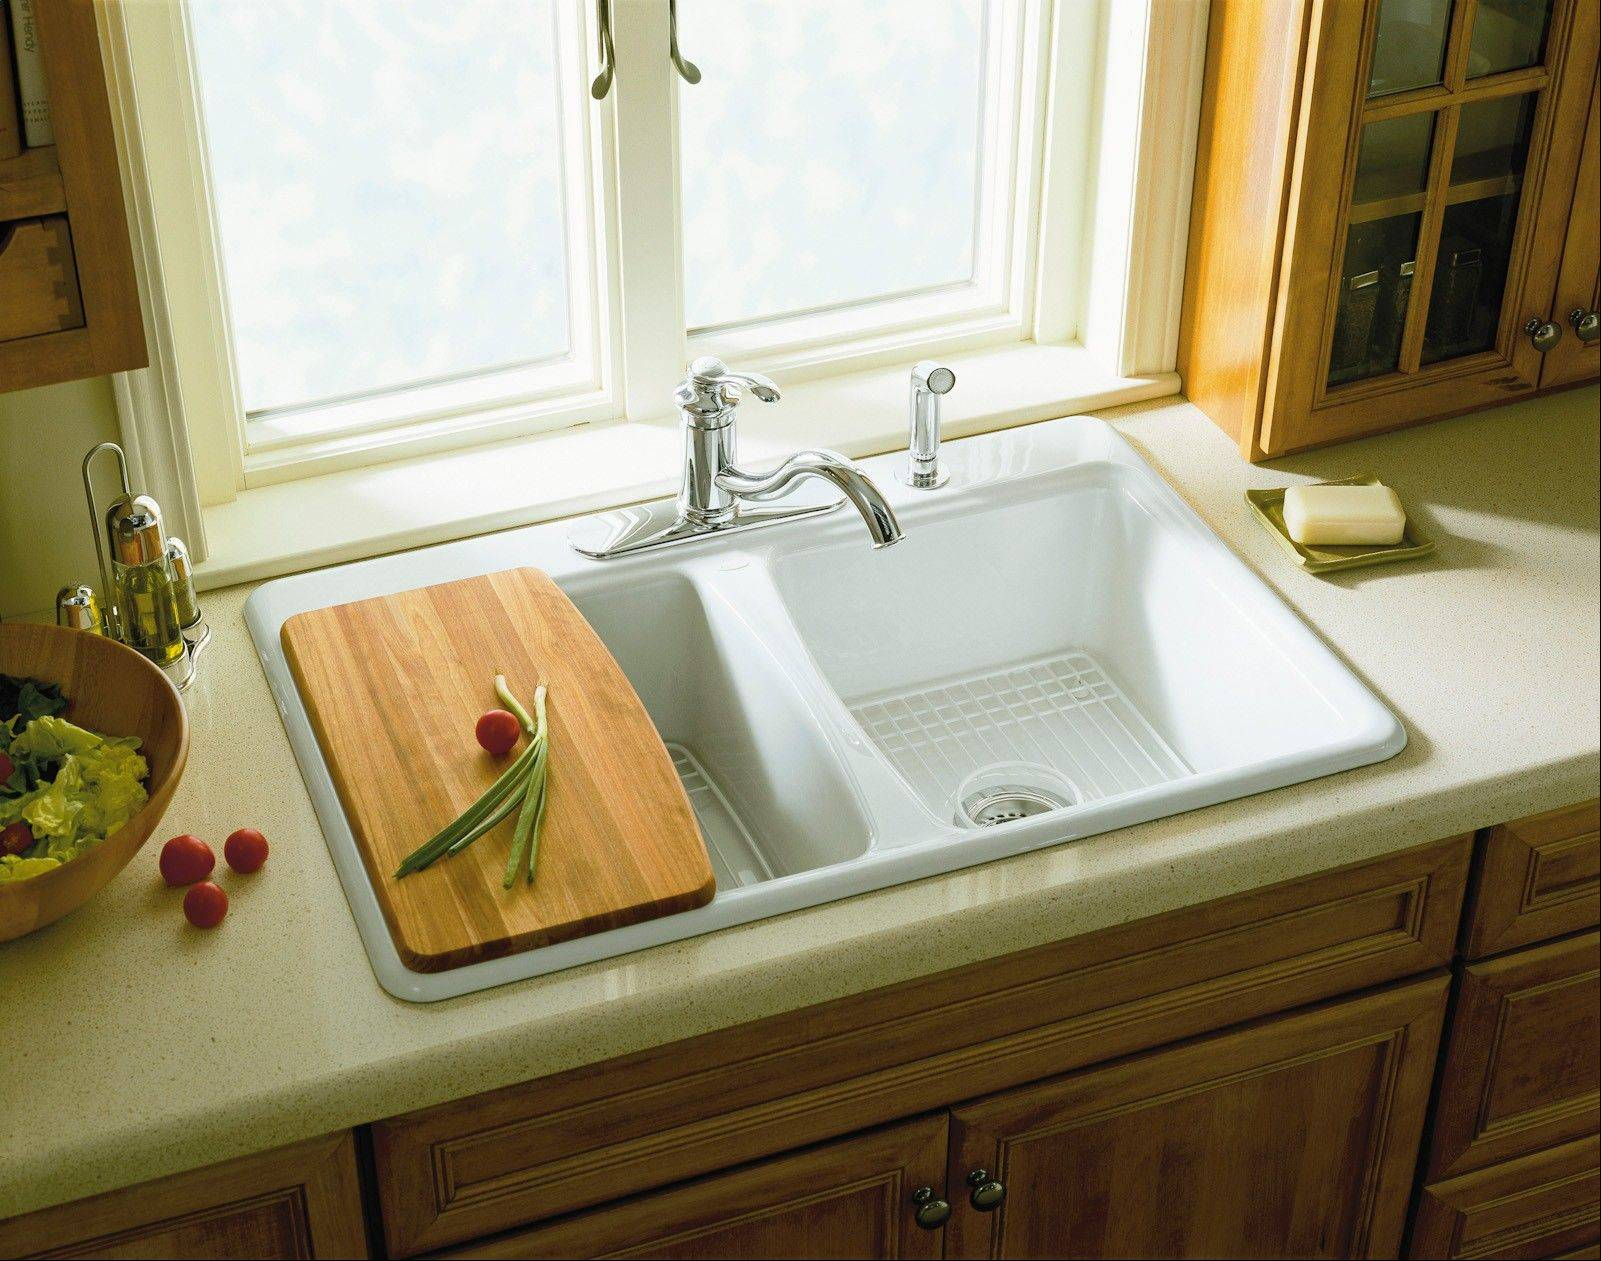 Because drop-in sinks are considered the standard type of sink, you may have more colors and styles from which to choose.